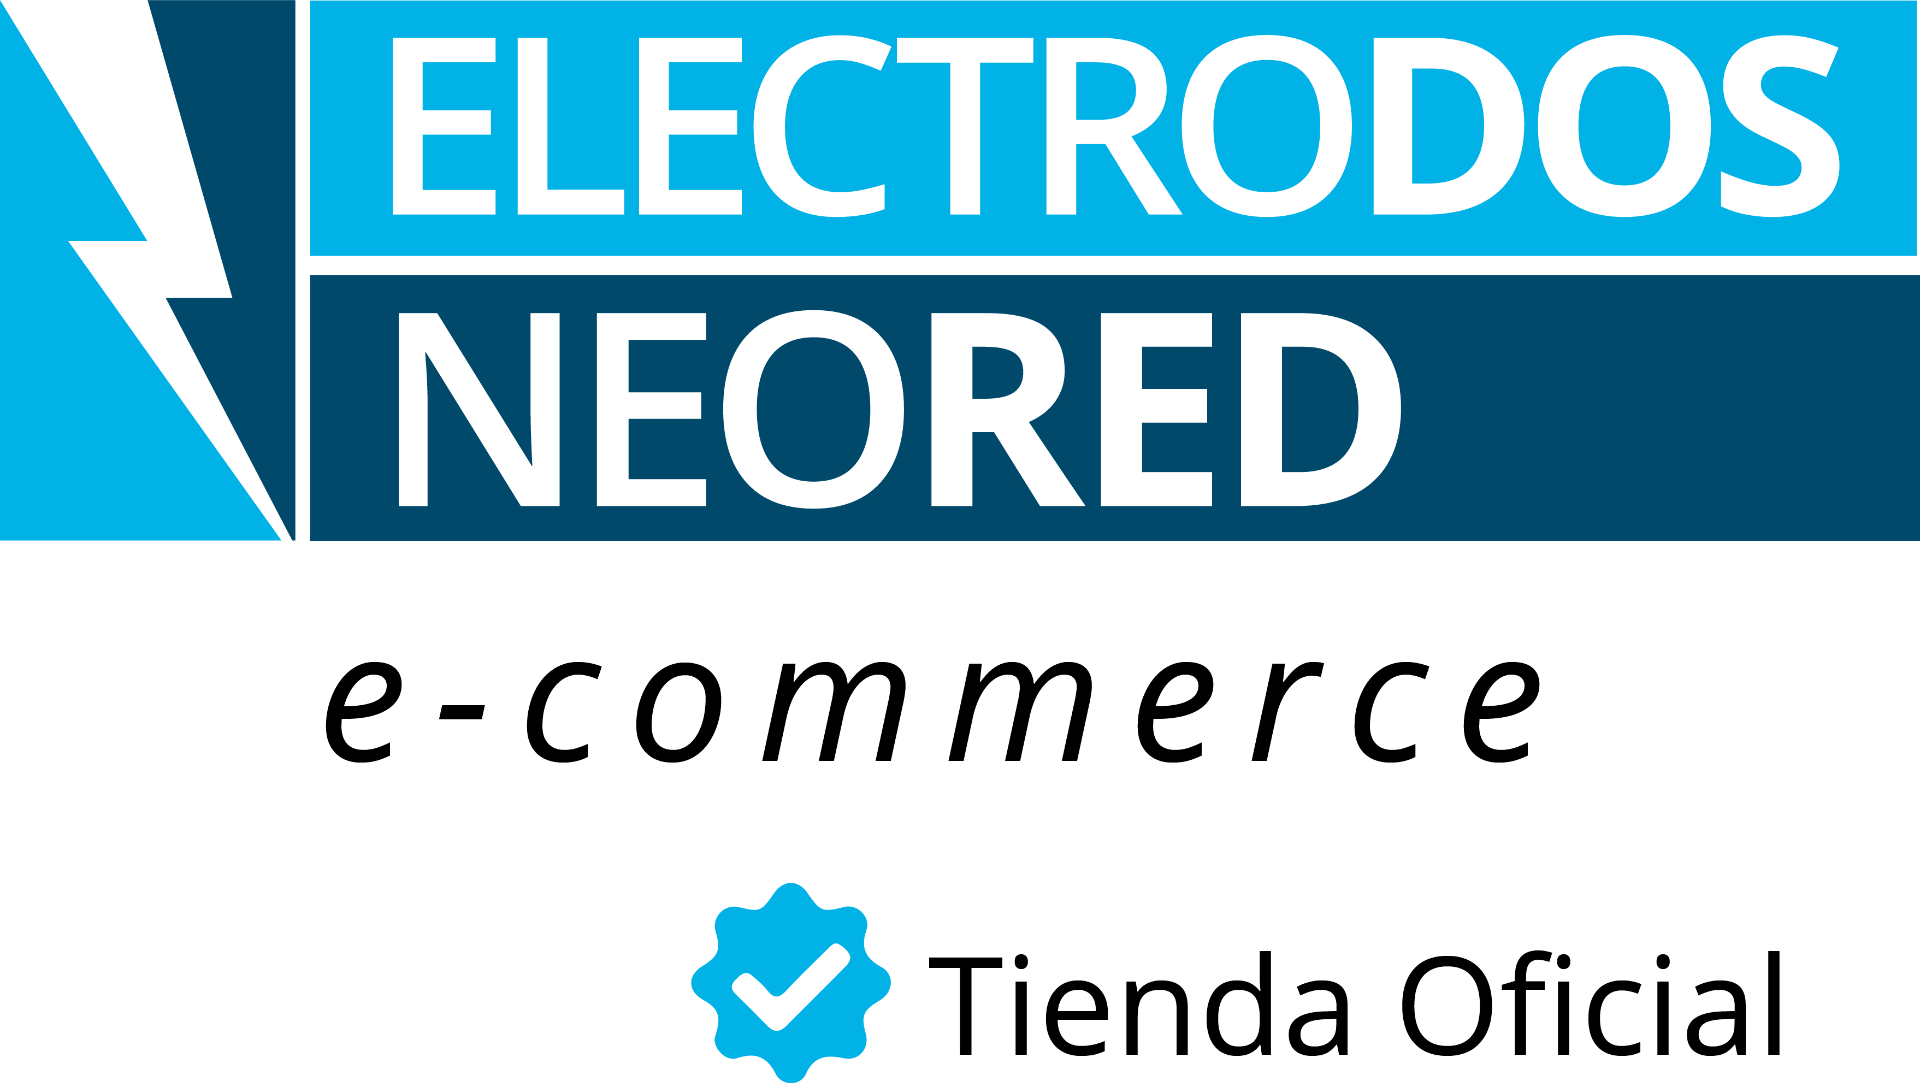 ELECTRO-DOS NEORED